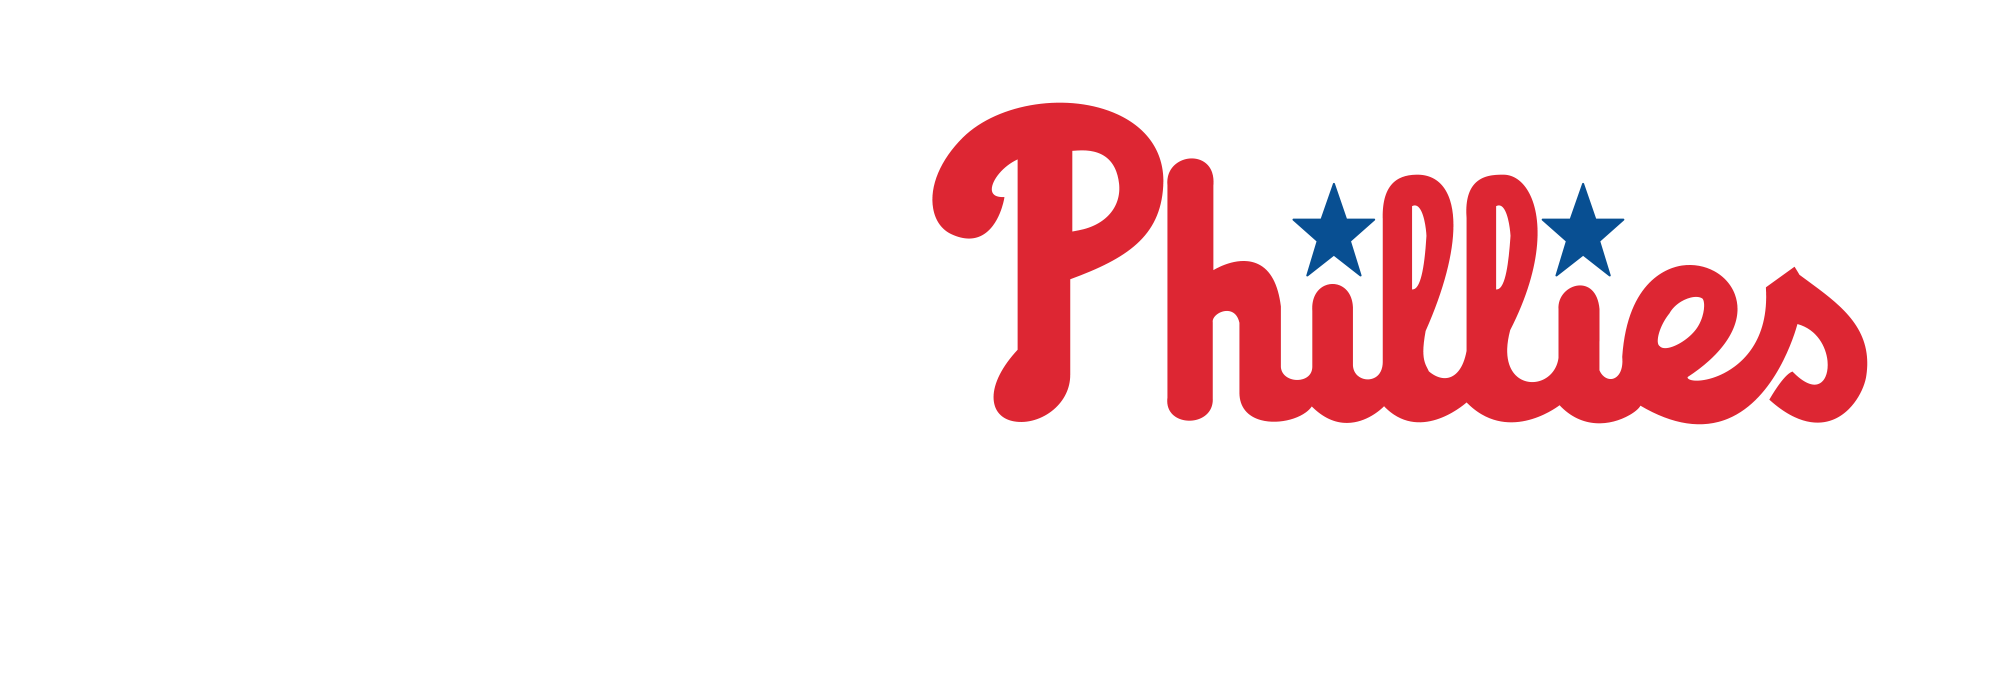 Listen to the Phillies live on WBCB, all season long